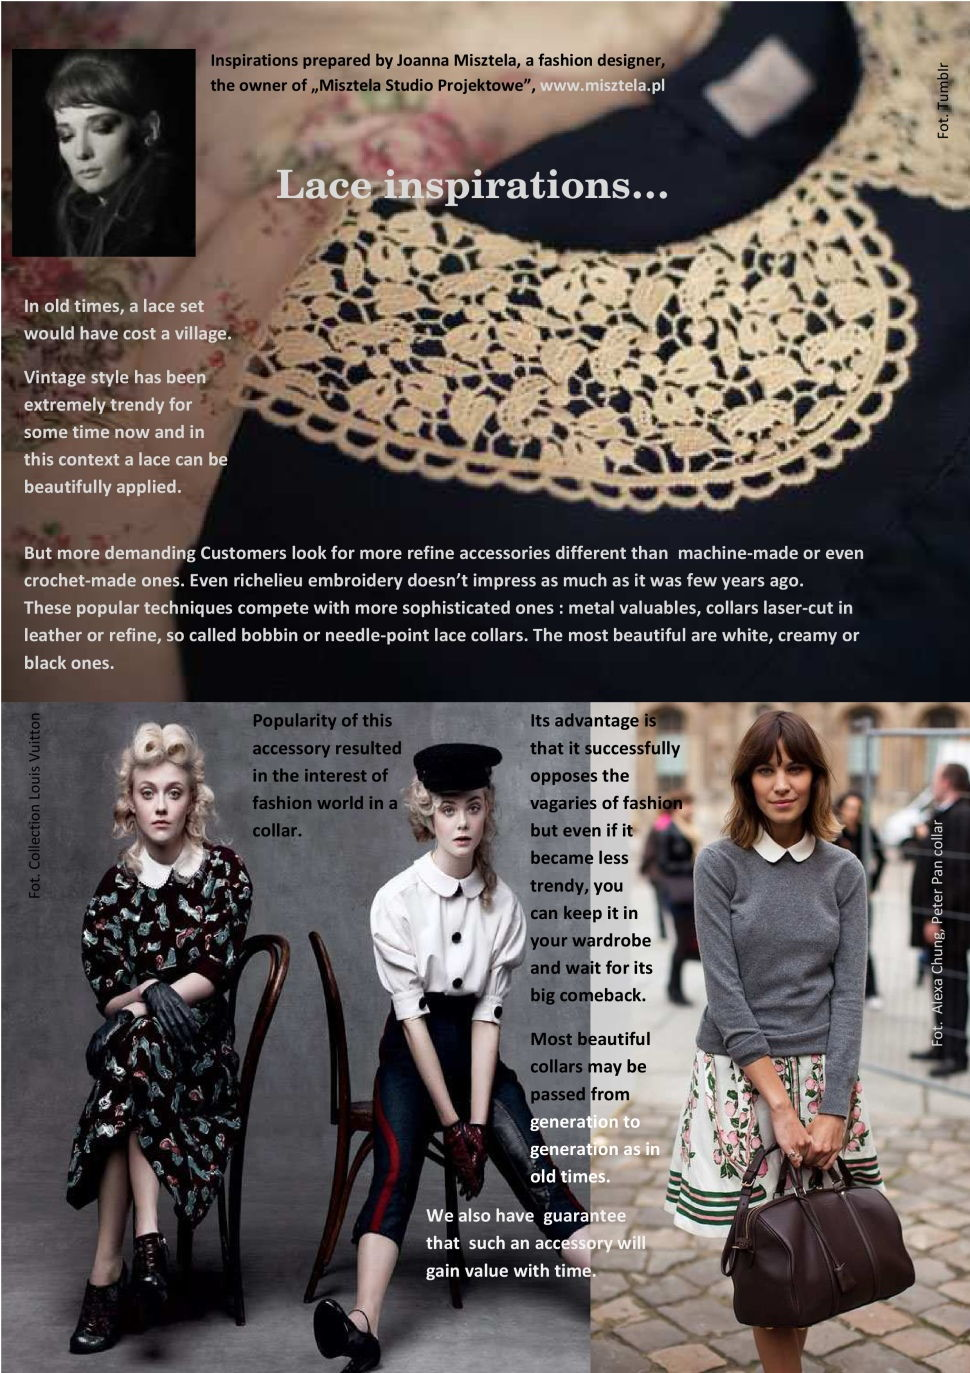 Fancy collars - Inspirations - My Poland